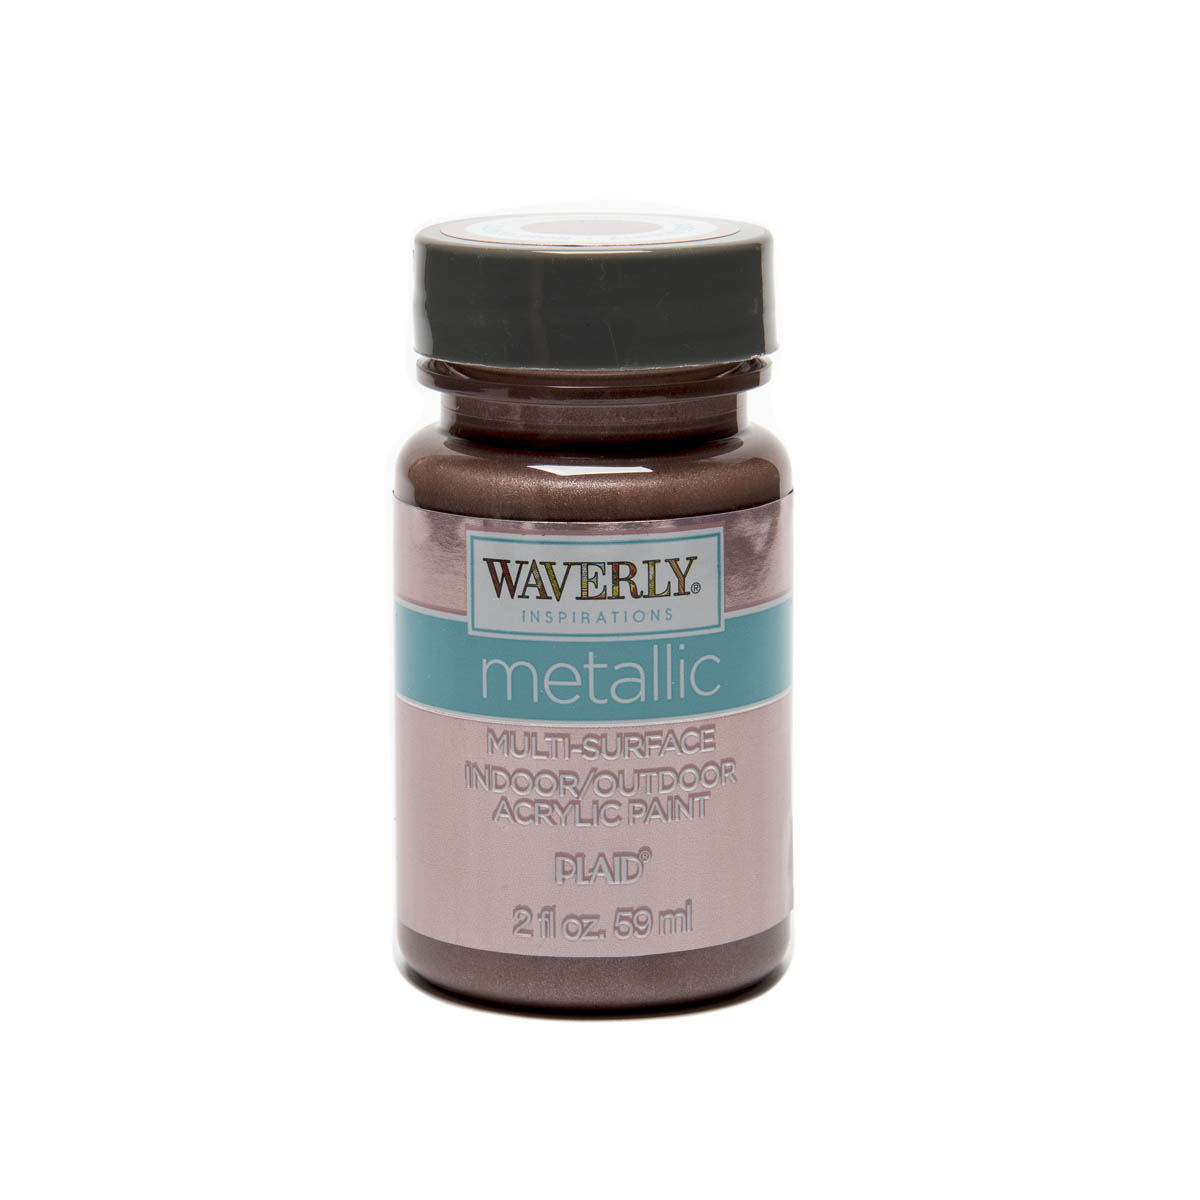 Waverly ® Inspirations Metallic Multi-Surface Acrylic Paint - Rose Quartz, 2 oz.